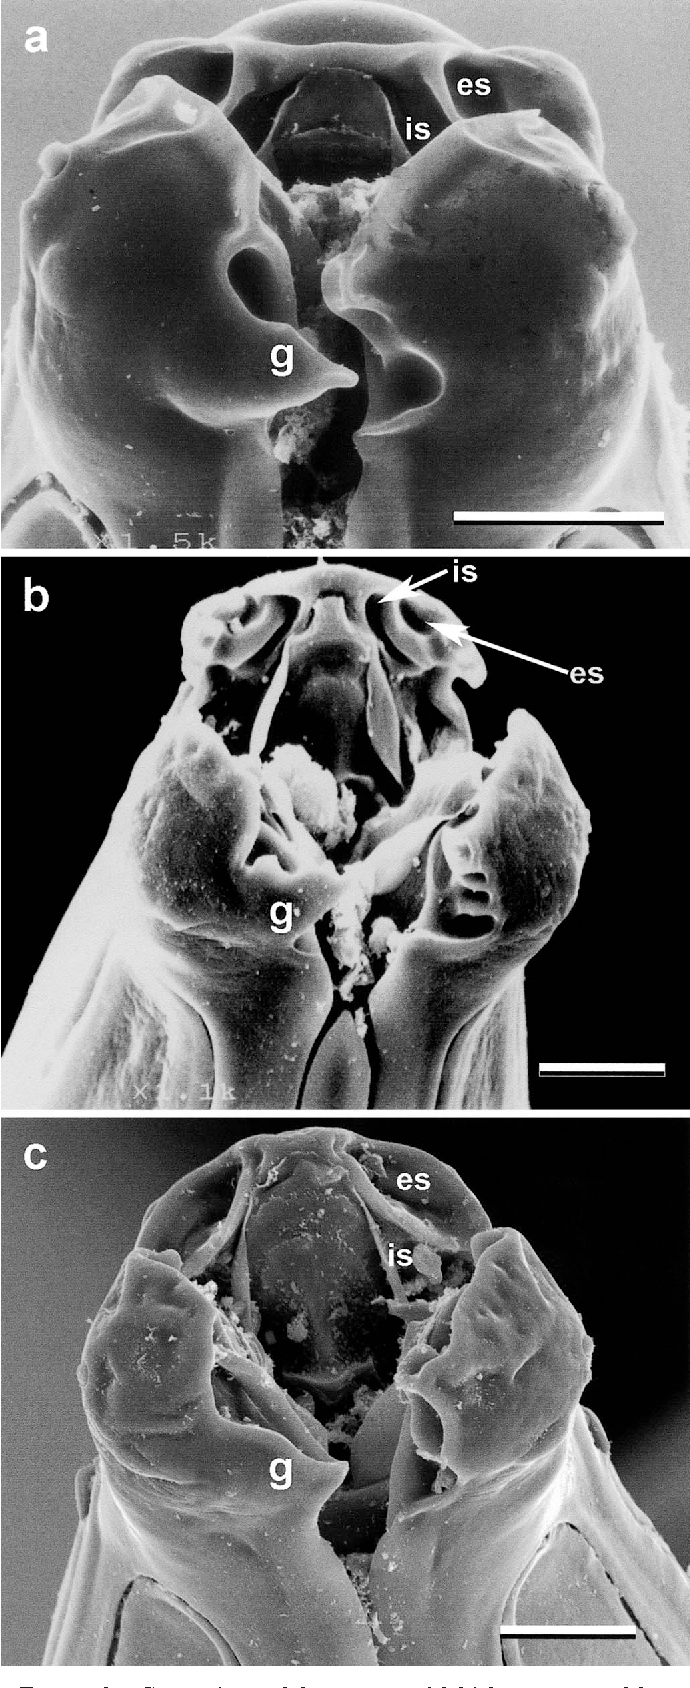 FIGURE 6. Comparison of the stoma and labial structures of 3 species of Aspidodera showing the digitiform projection of the dextroventral lip ''g''; interior, ''is''; and exterior sockets, ''es.'' Scale bar 20 m. (a) A. sogandaresi n. sp. male (b) A. fasciata male (c) A. vazi female.